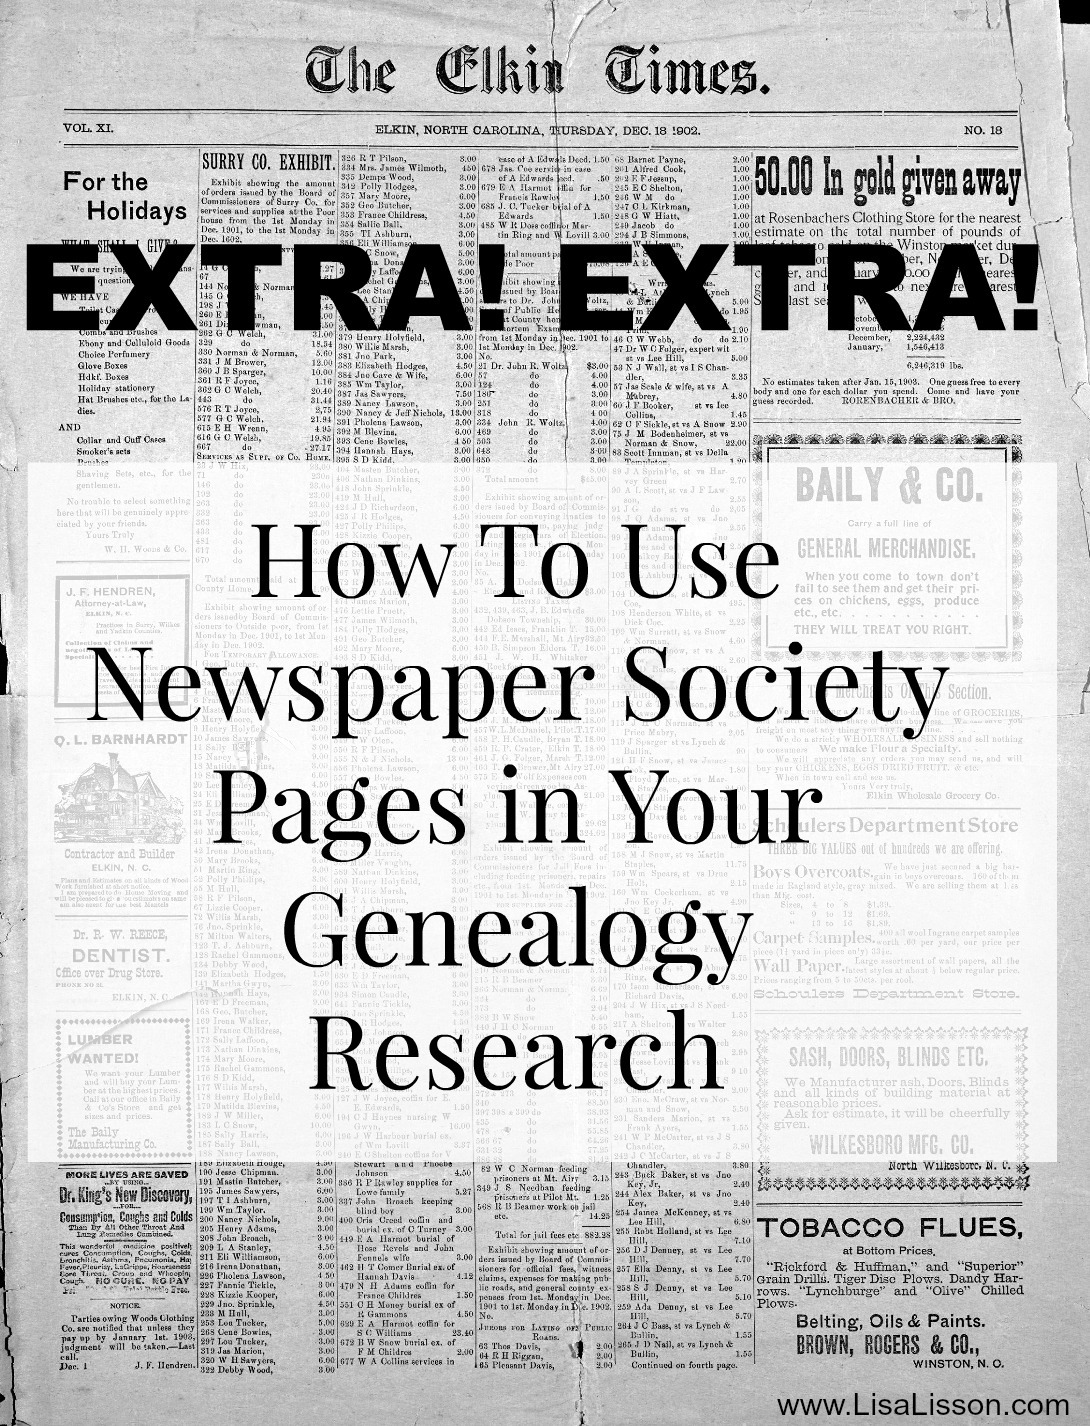 How to Use Newspaper Society Pages in Your Genealogy